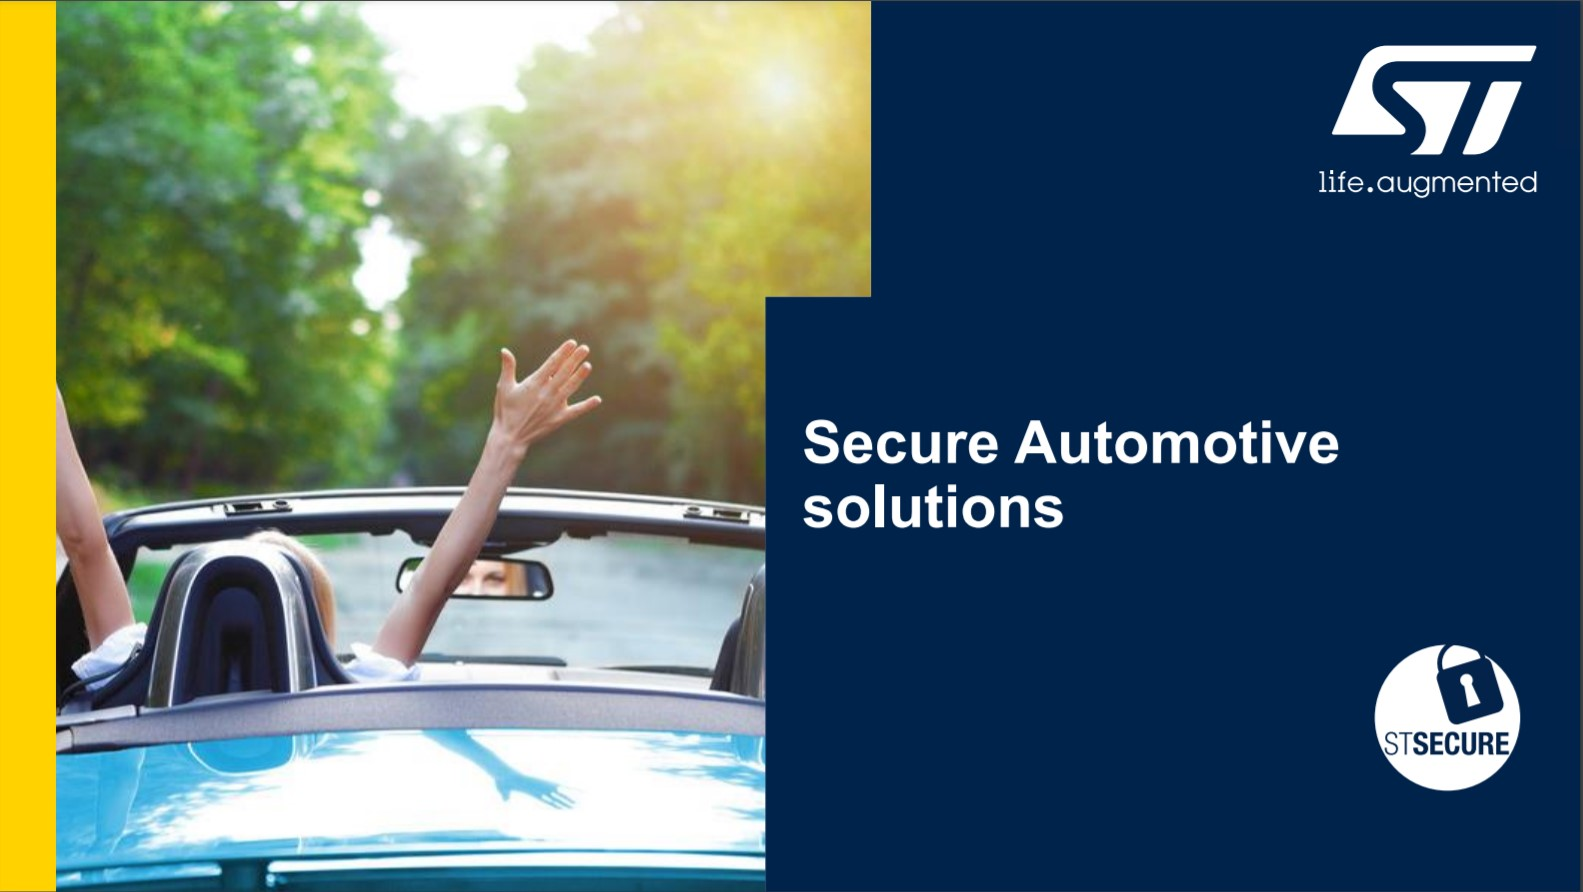 Secure Automotive Solutions